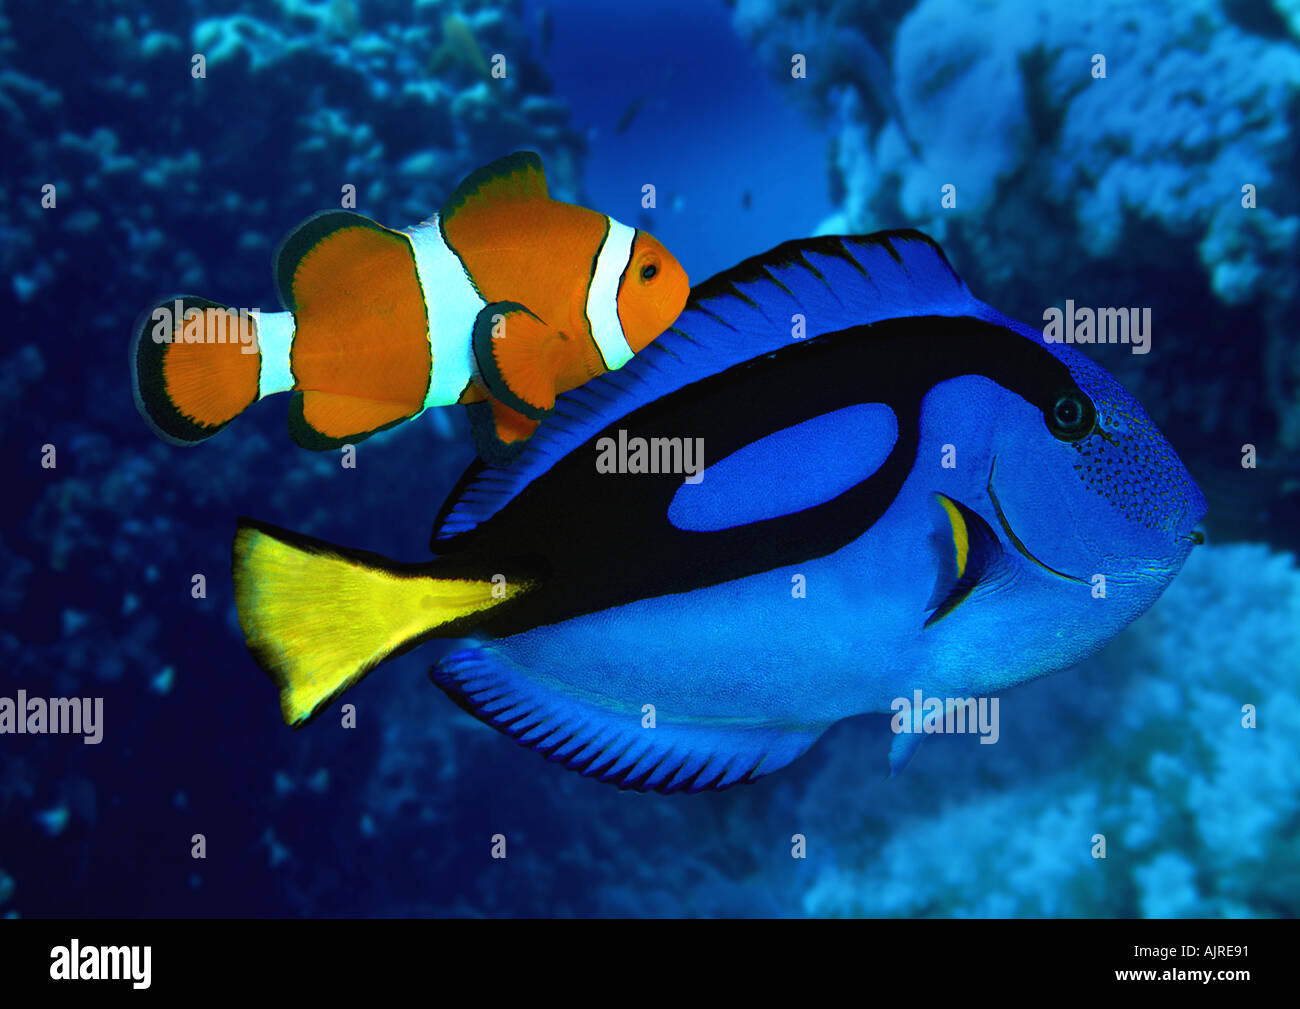 http://c8.alamy.com/comp/AJRE91/blue-tang-surgeonfish-with-clownfish-anemonefish-AJRE91.jpg